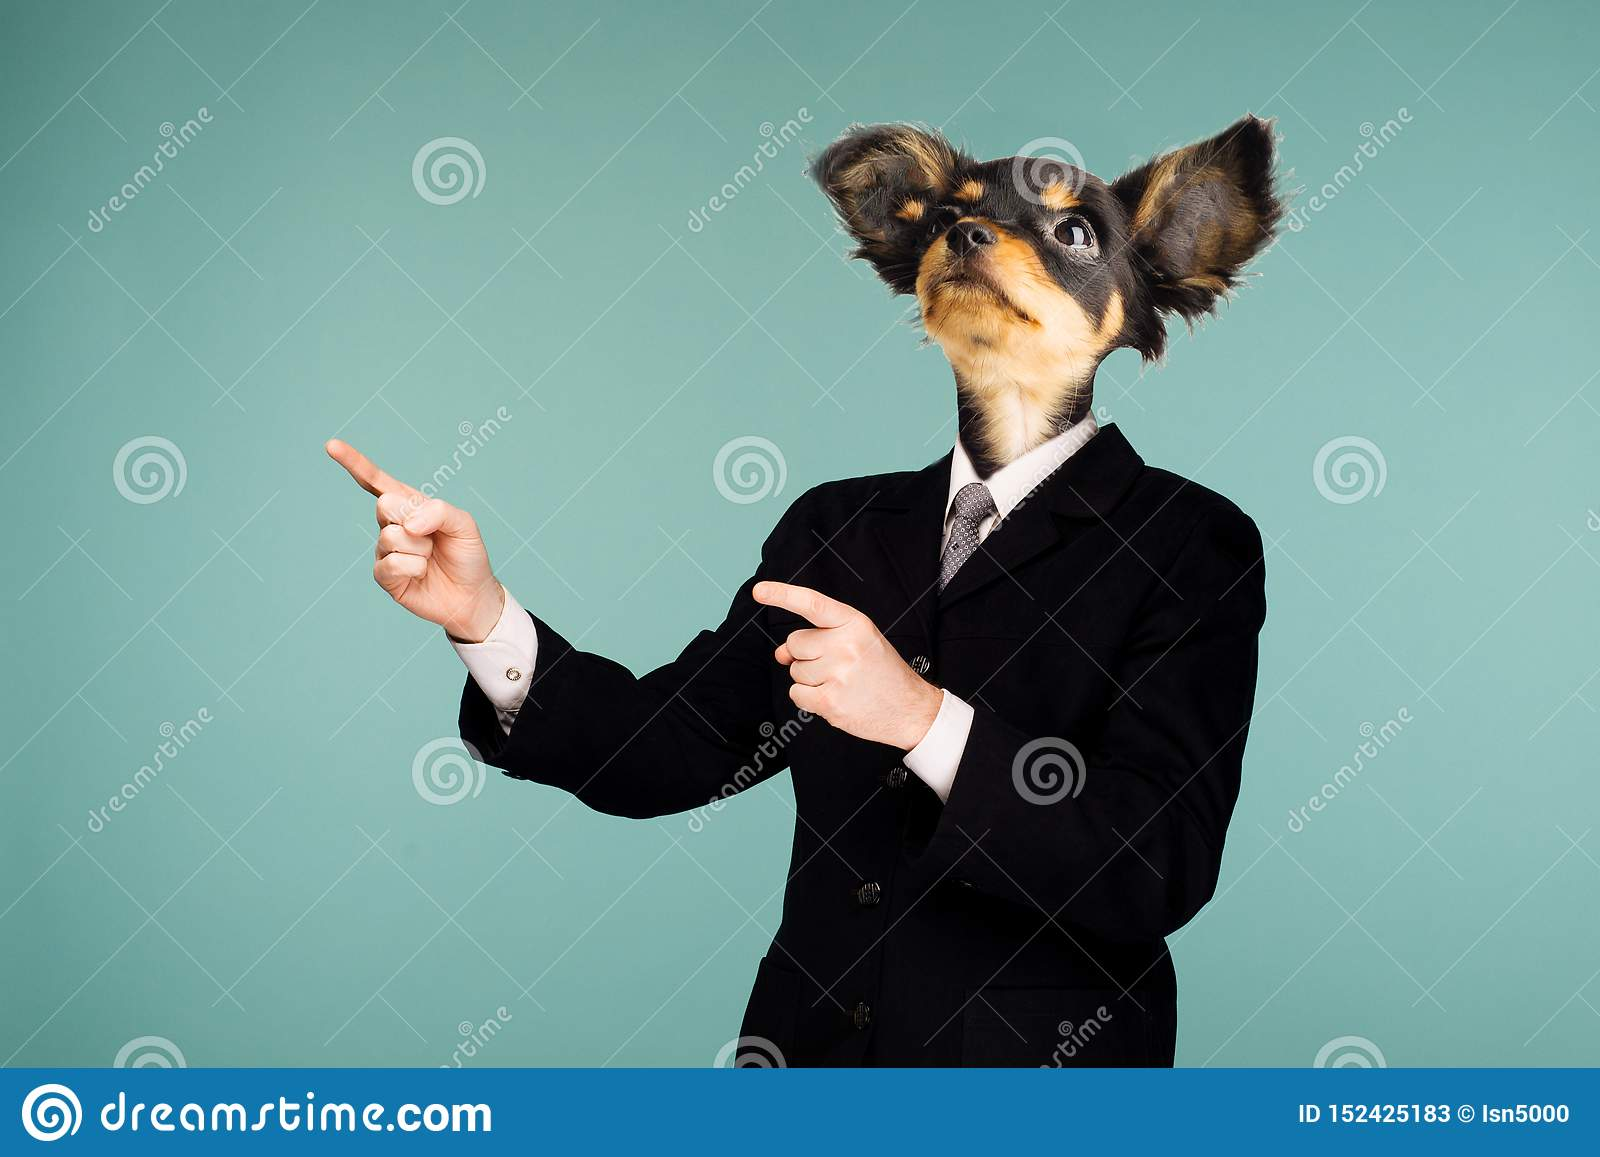 Psychedelic collage combining a man in a suit and a dog`s head. The character looking up and pointing to the side